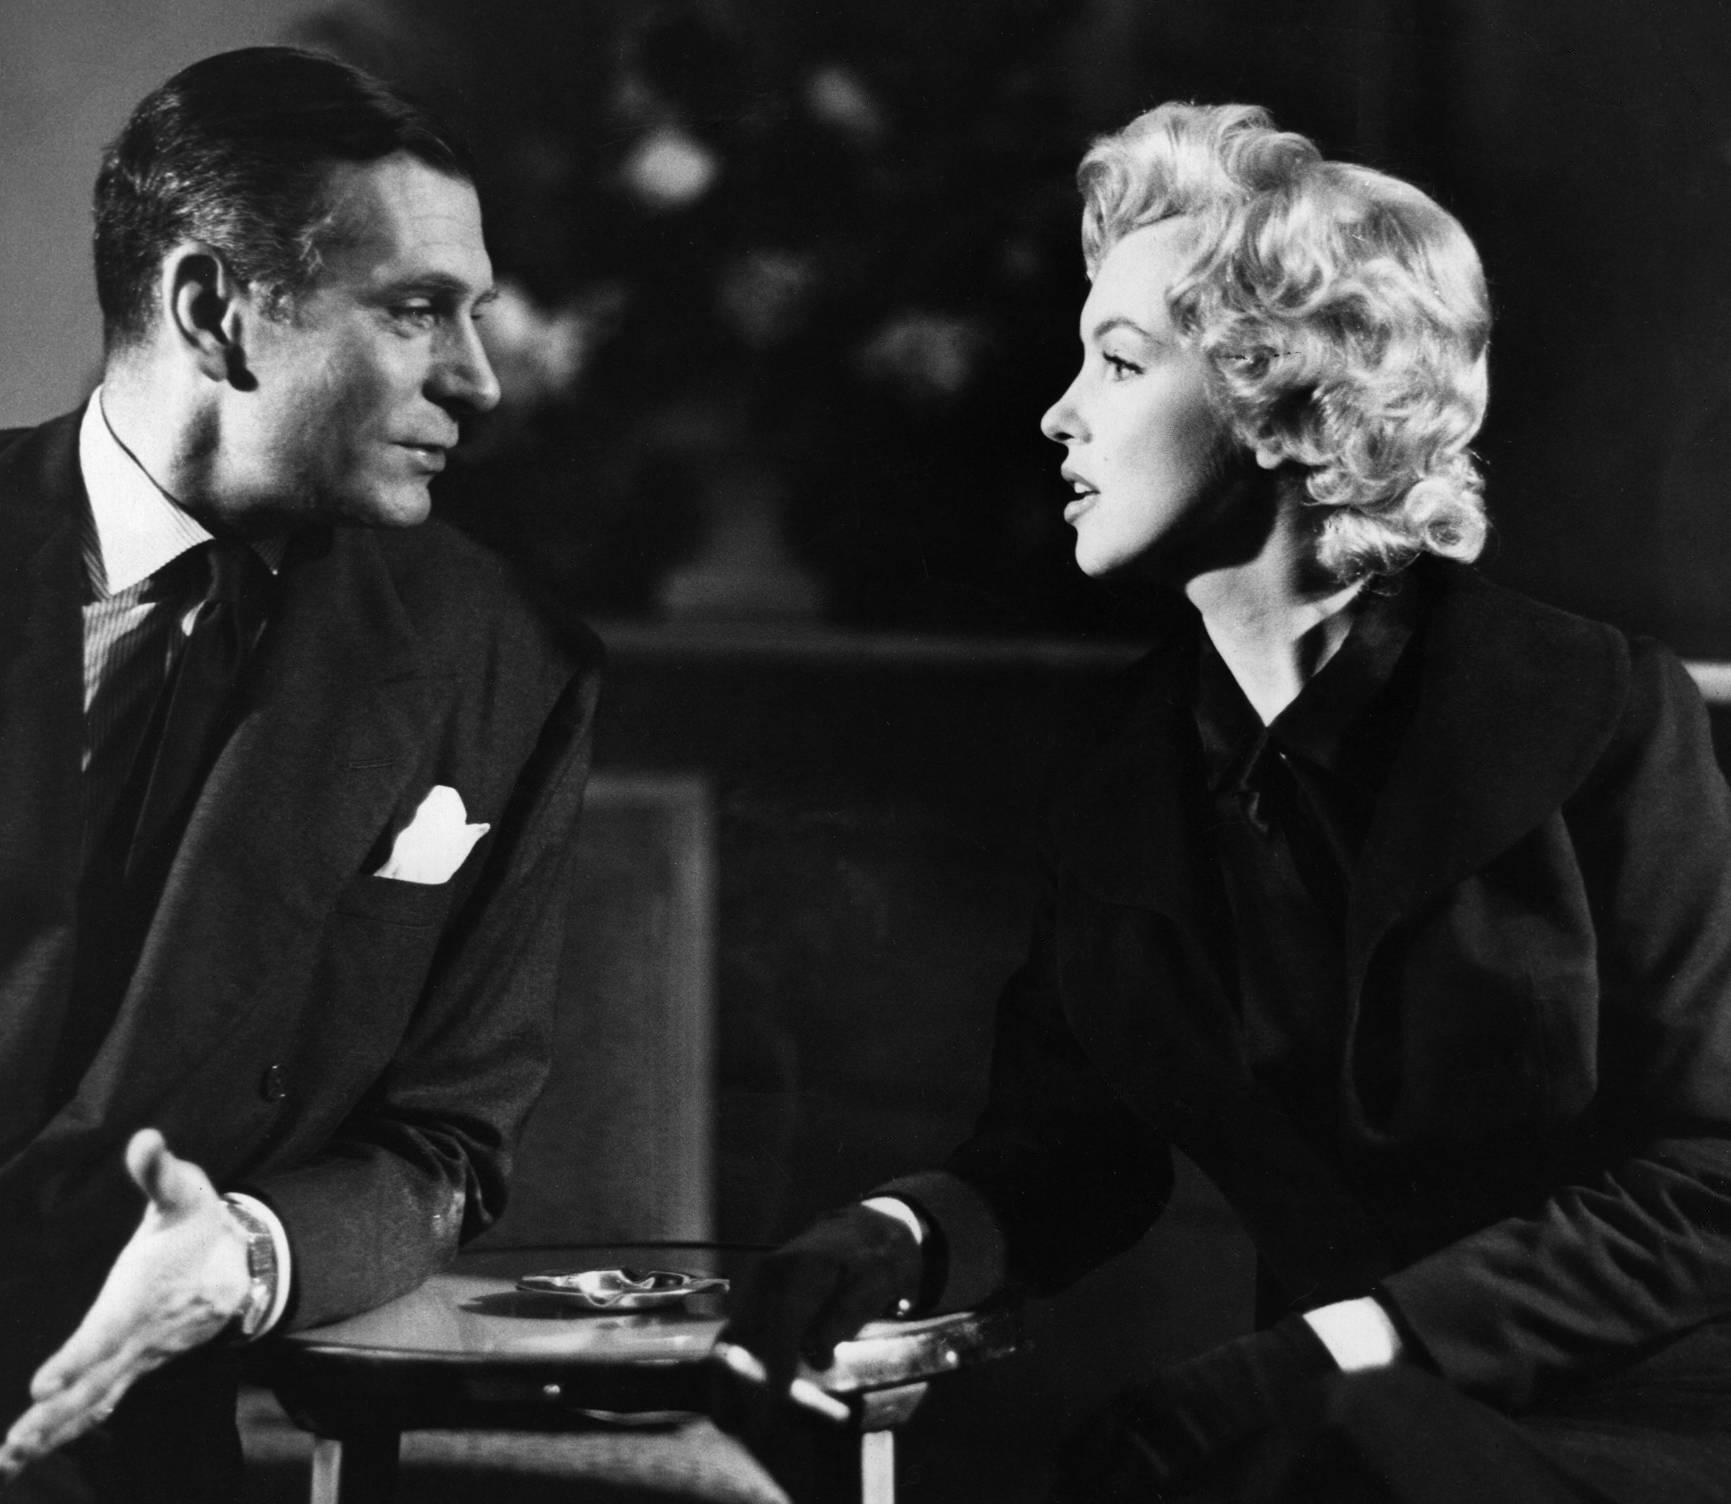 Marilyn Monroe and Laurence Olivier (The Prince and the Showgirl)